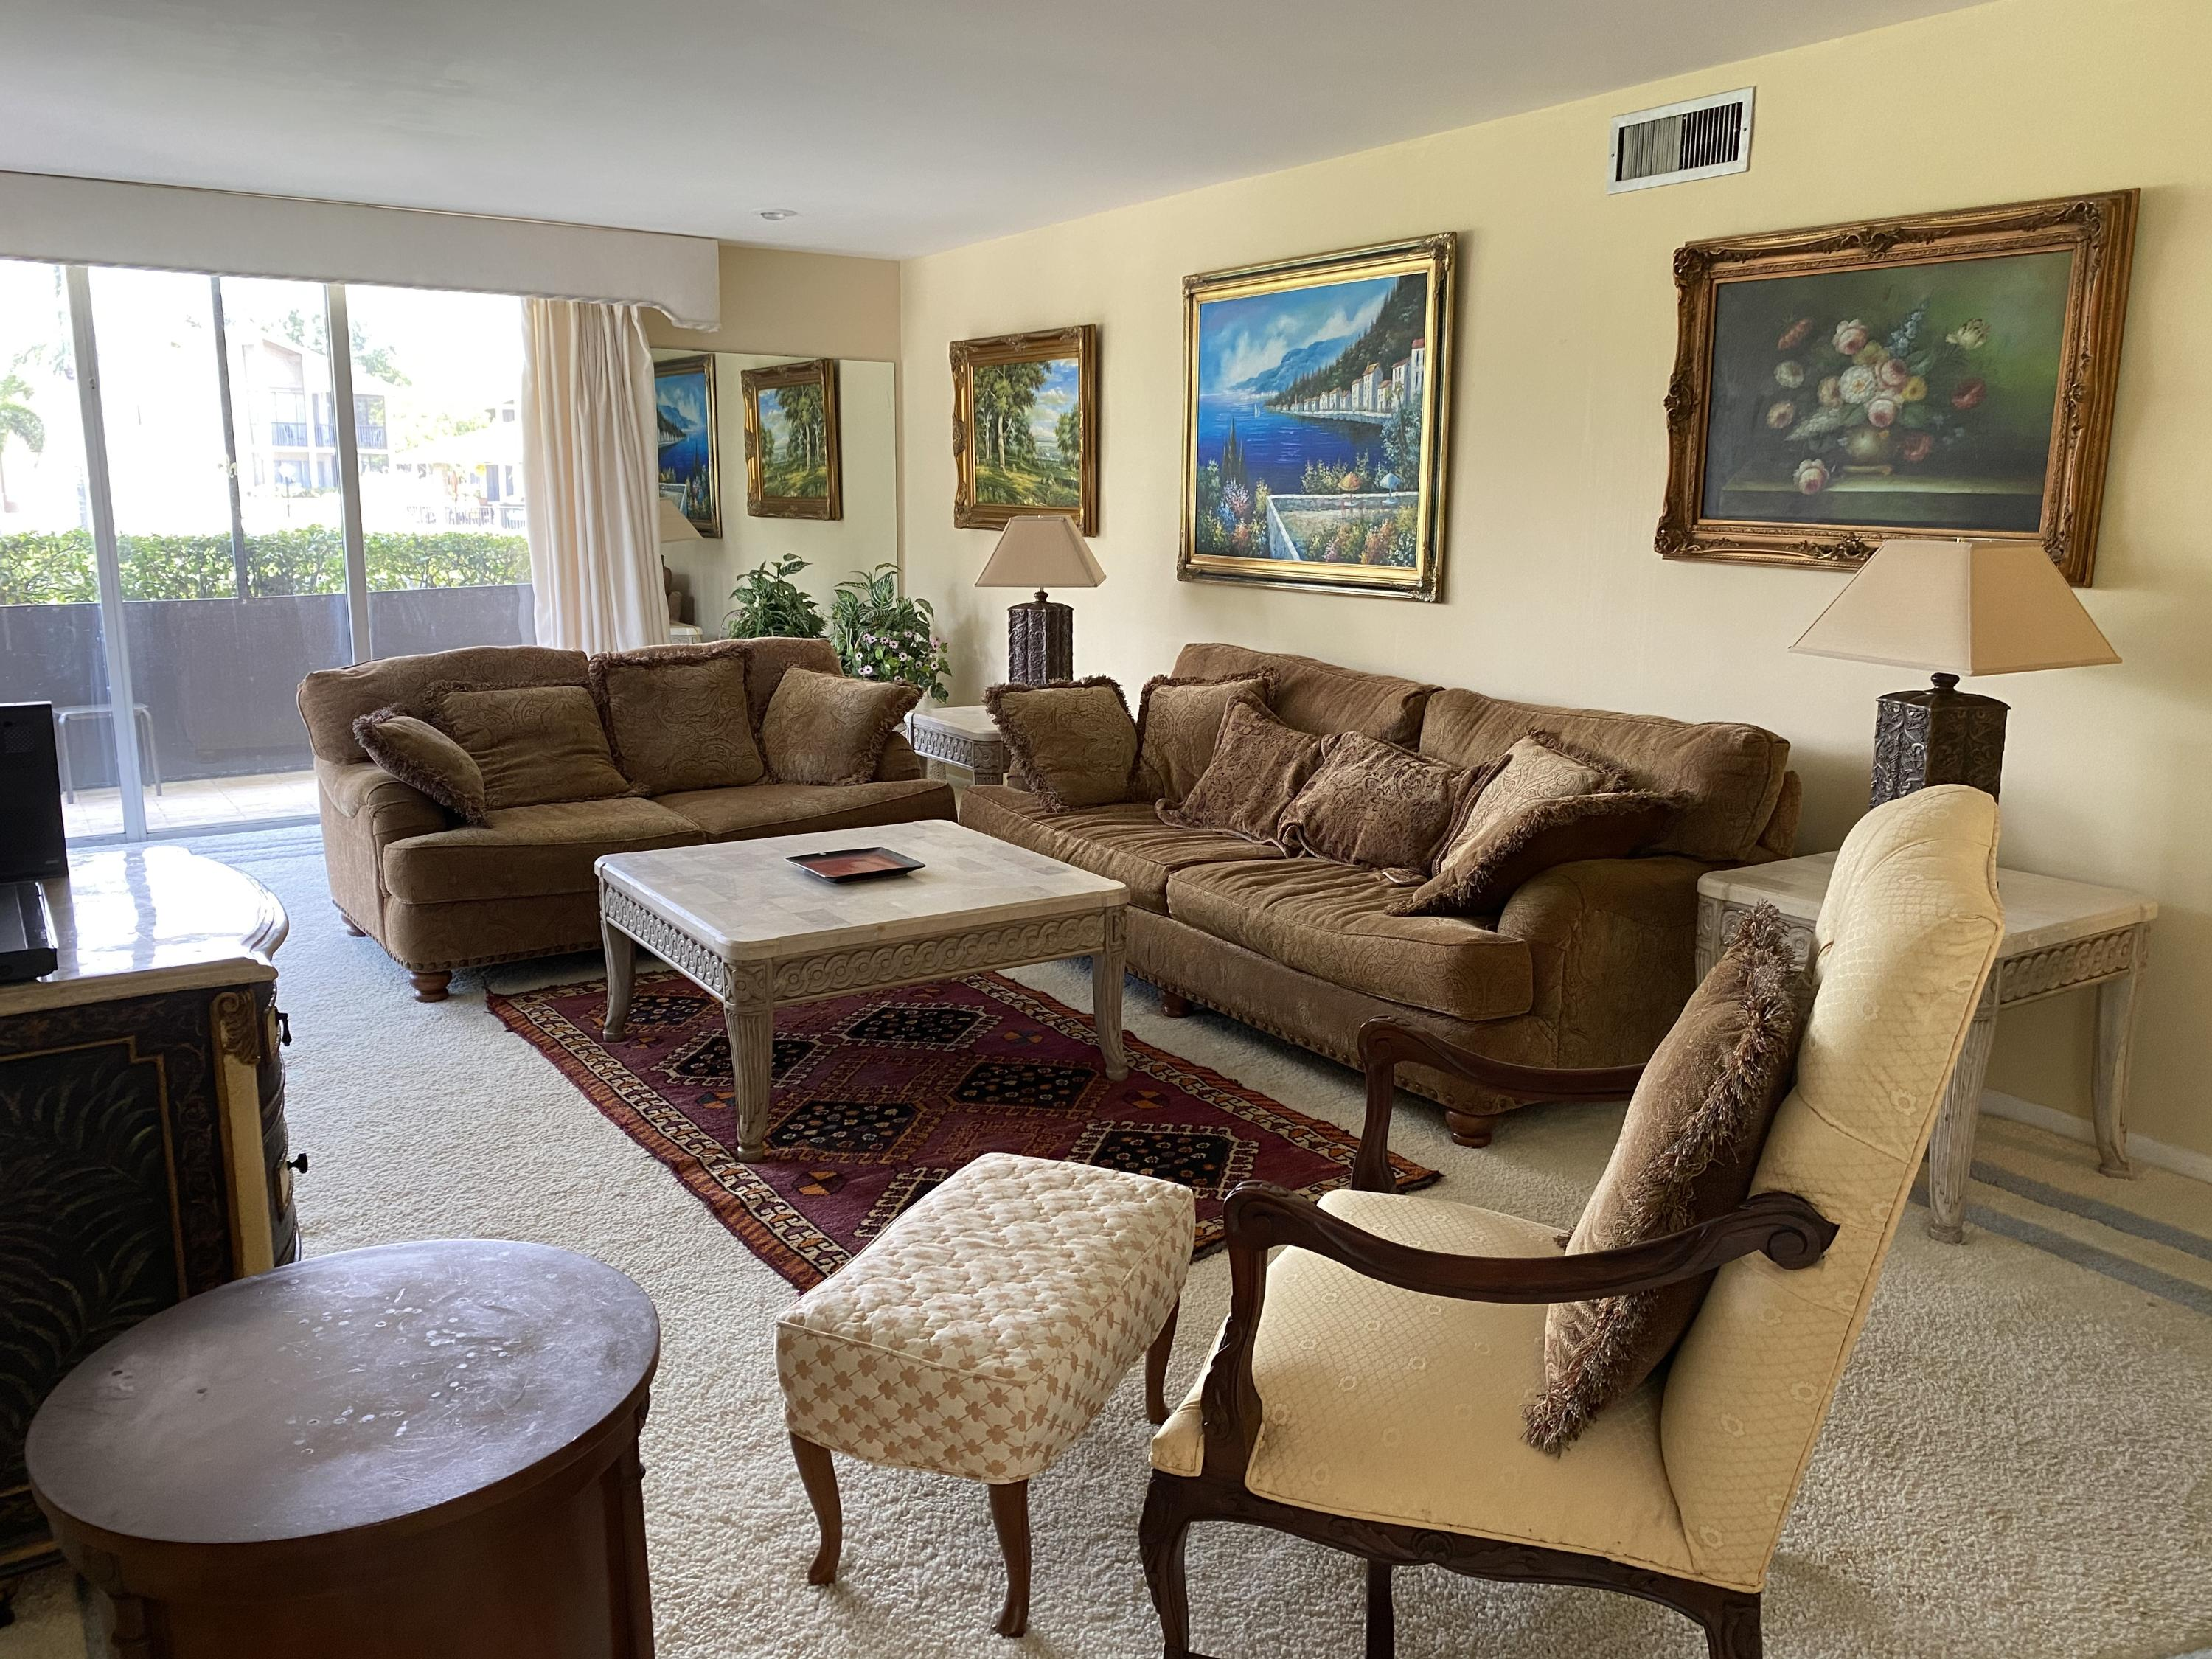 FIRST FLOOR END UNIT WITH SCREENED WRAP AROUND PATIO AND BEAUTIFUL VIEW. SPACIOUS, LIGHT AND COMFORTABLE WITH UPDATED, OPEN KITCHEN. KING BEDS IN BOTH BEDROOMS. WALK IN CLOSET IN MASTER. POOL AREA HAS SOCIAL GAZEBO AREA WITH BARBECUE. UPDATED CLUBHOUSE WITH EXERCISE AREA AND LIBRARY. LONGWOOD IS A 55+ COMMUNITY LOCATED OFF PGA BLVD. WITH THE BEST IN DINING AND SHOPPING. MINUTES TO GOLF COURSES, MARINAS AND BEACHES.